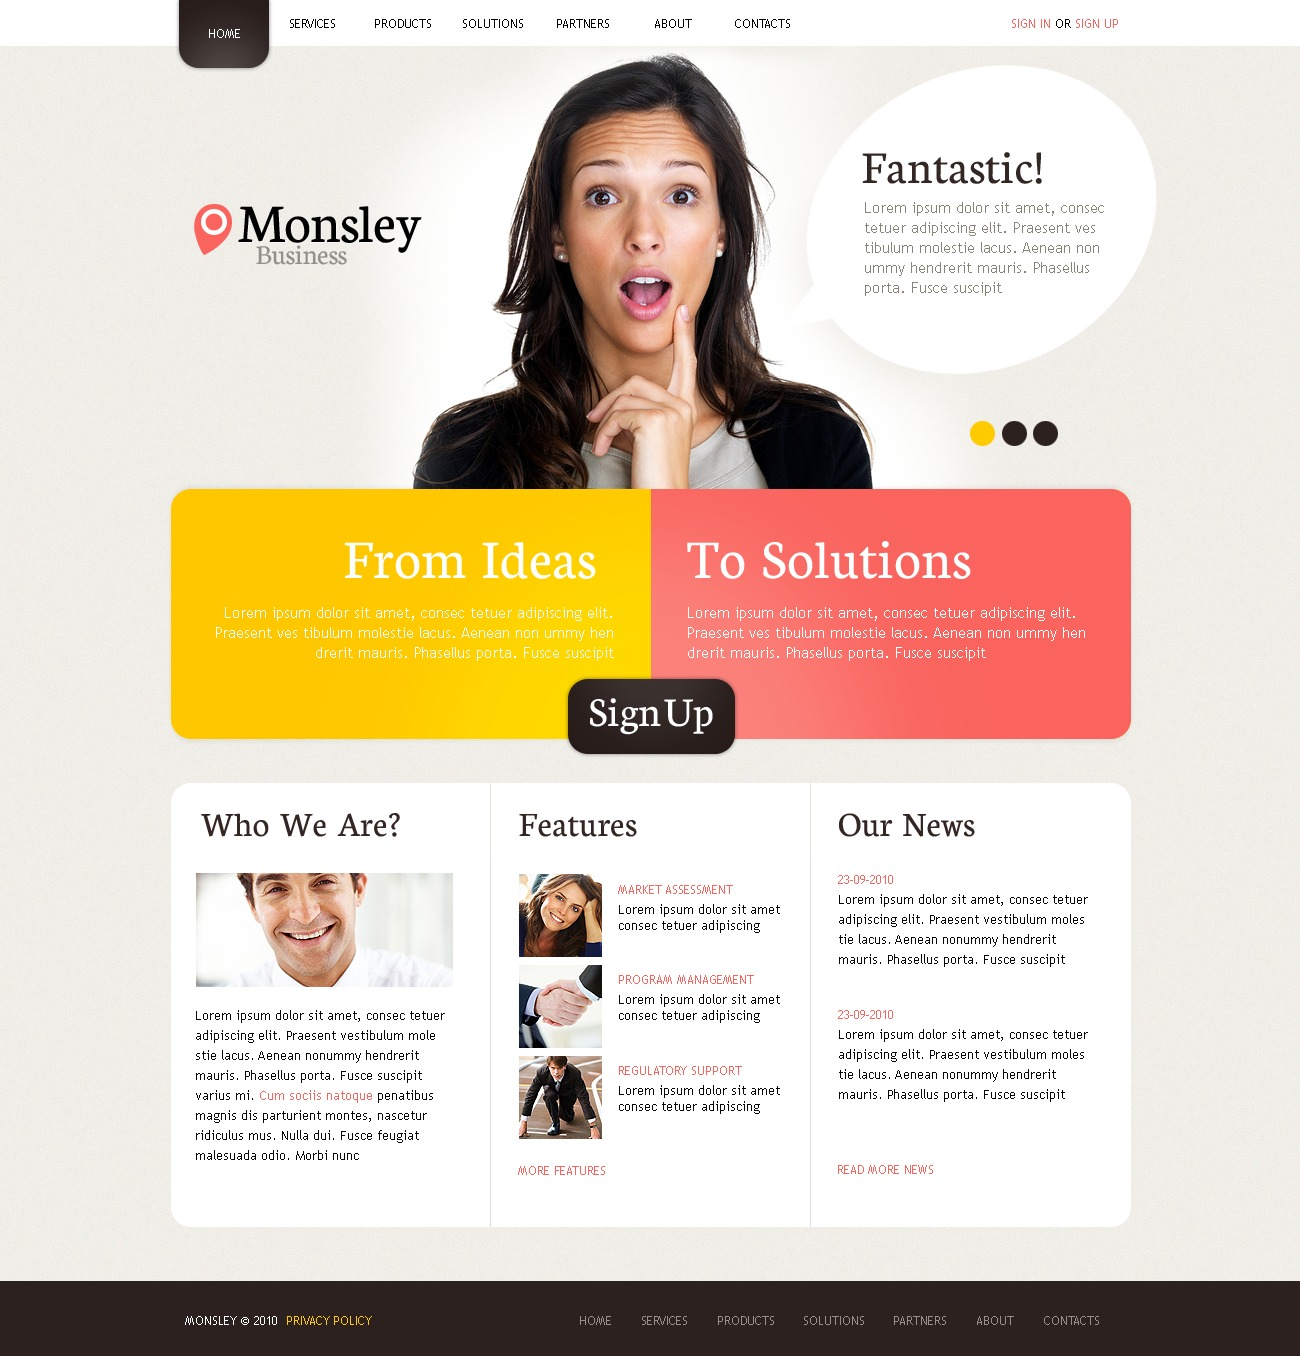 The Monsley Business Company PSD Design 54484, one of the best PSD templates of its kind (business, wide, jquery), also known as monsley business company PSD template, corporate solutions PSD template, innovations PSD template, contacts PSD template, service PSD template, support PSD template, information dealer PSD template, stocks PSD template, team PSD template, success PSD template, money PSD template, marketing PSD template, director PSD template, manager PSD template, analytics PSD template, planning PSD template, limited PSD template, office PSD template, sales and related with monsley business company, corporate solutions, innovations, contacts, service, support, information dealer, stocks, team, success, money, marketing, director, manager, analytics, planning, limited, office, sales, etc.